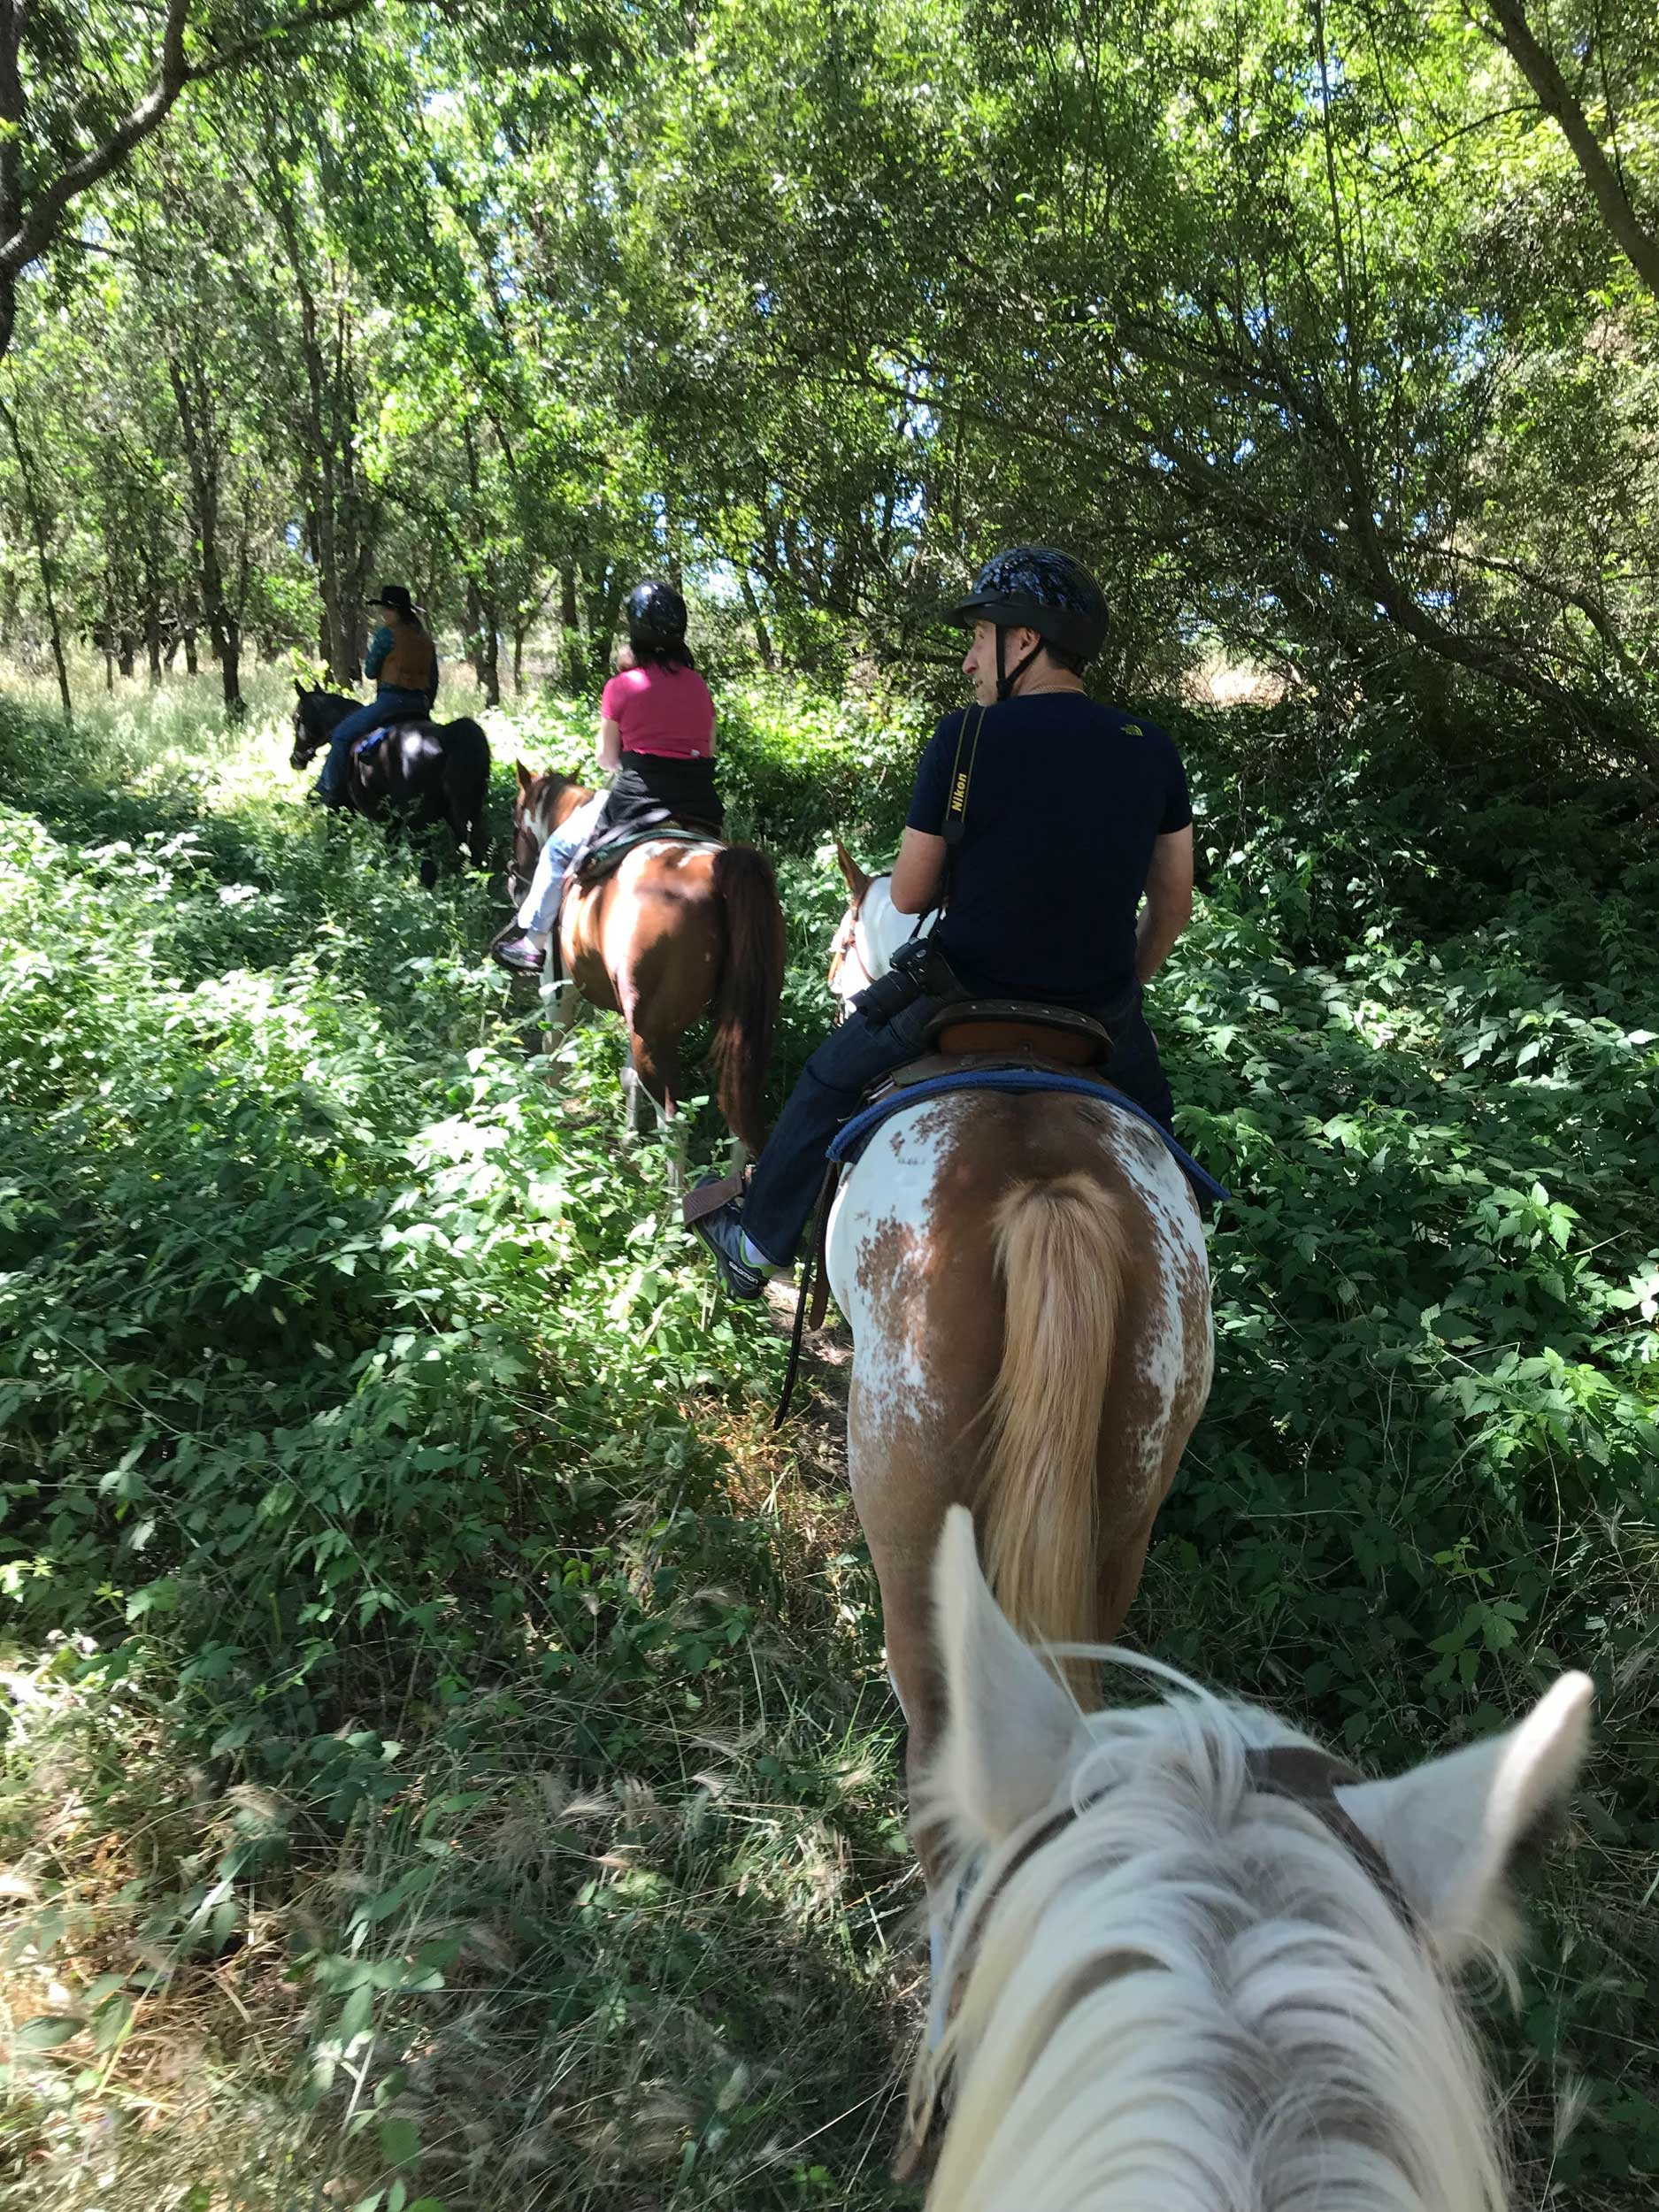 Riding horses single-file through the woods